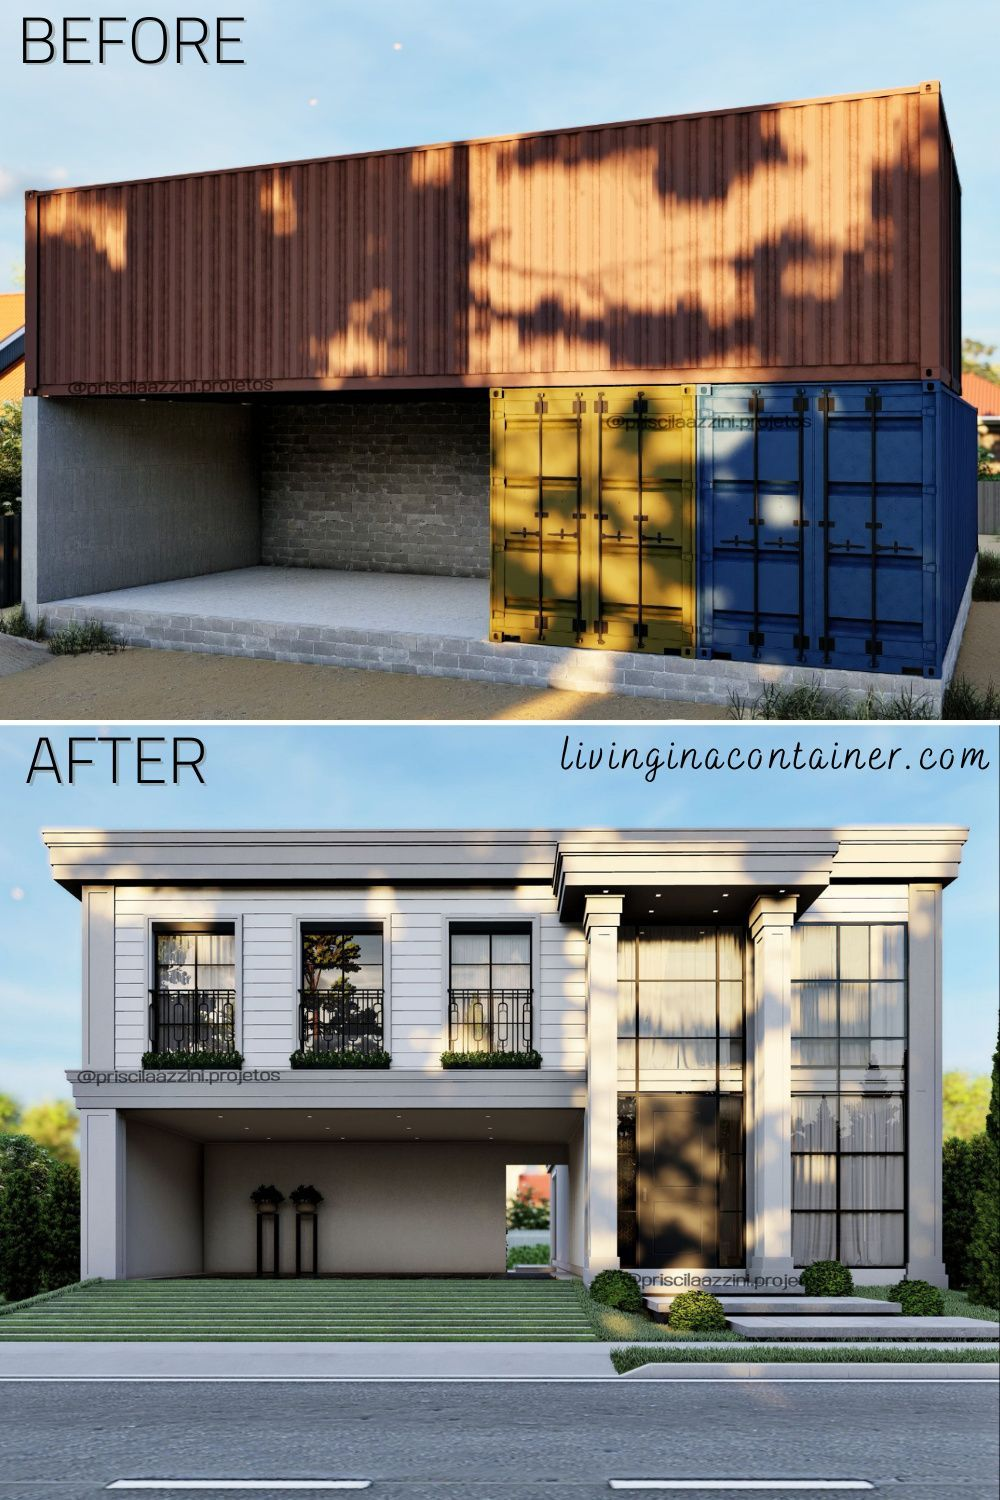 3 Bedrooms Luxury Shipping Container House Model b